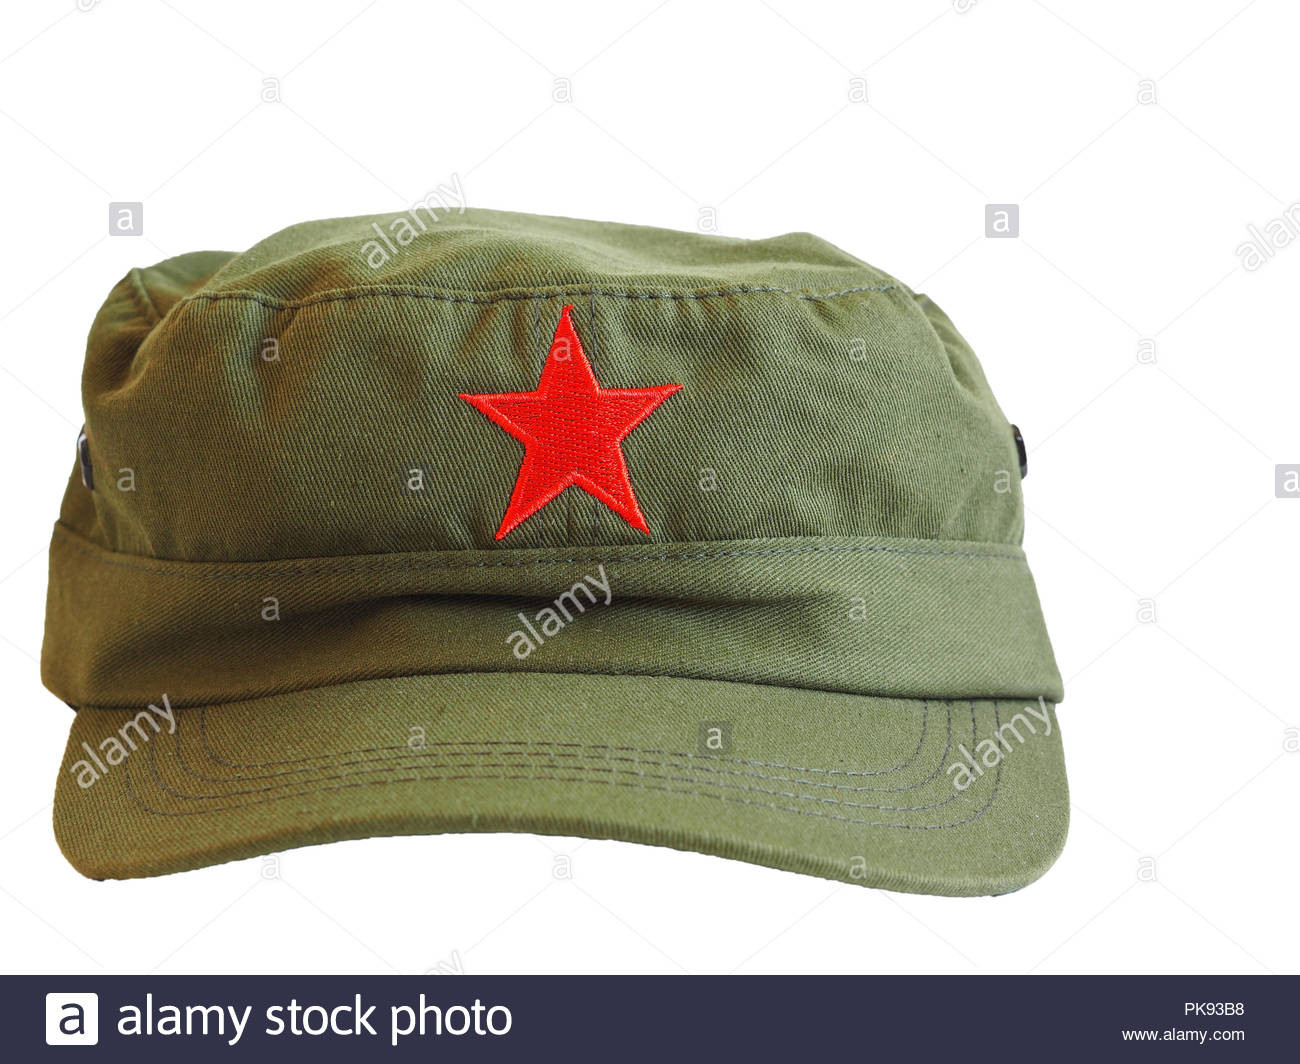 Close-up of green military cap with red star of China 67f9620cf848